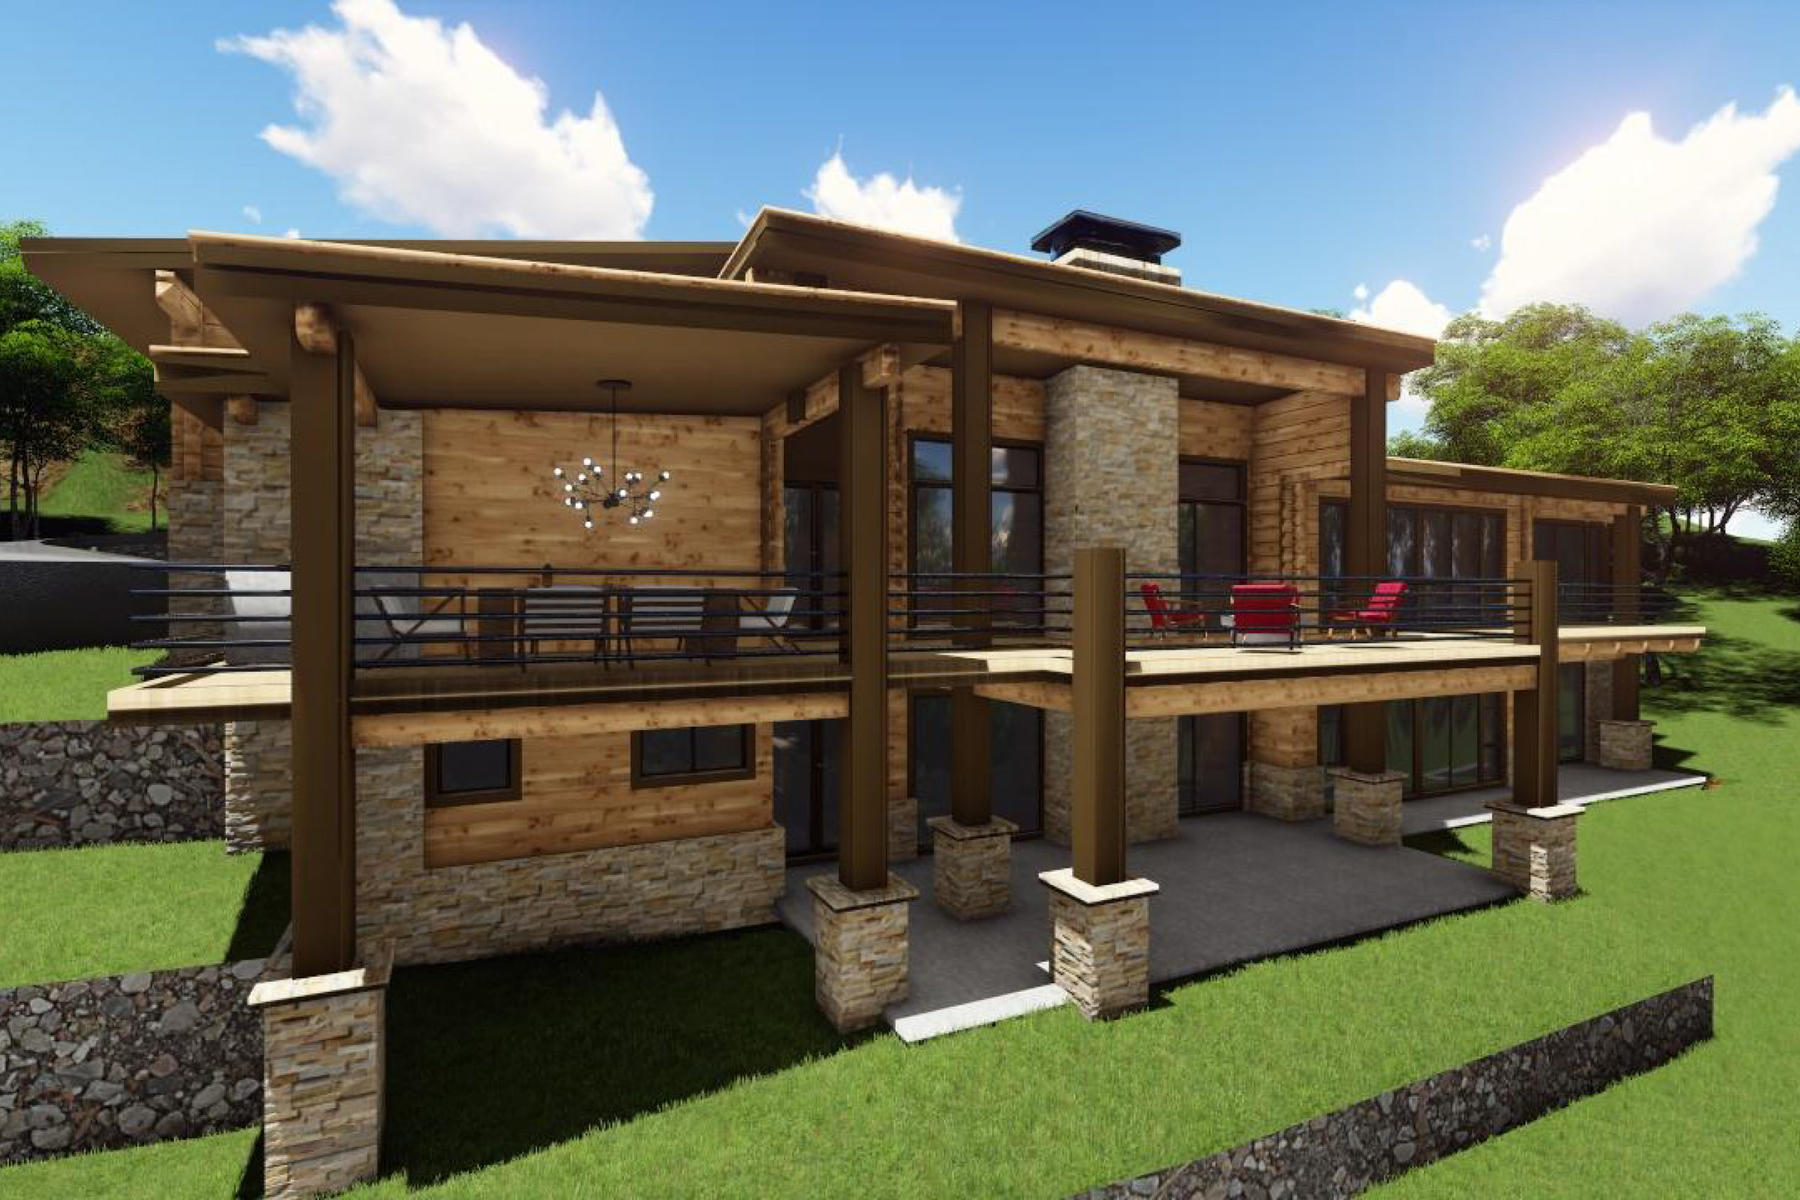 Single Family Home for Sale at Great Location, Great Quality, Great Opportunity 8424 N Promontory Ranch Rd Lot 71 Park City, Utah, 84098 United States